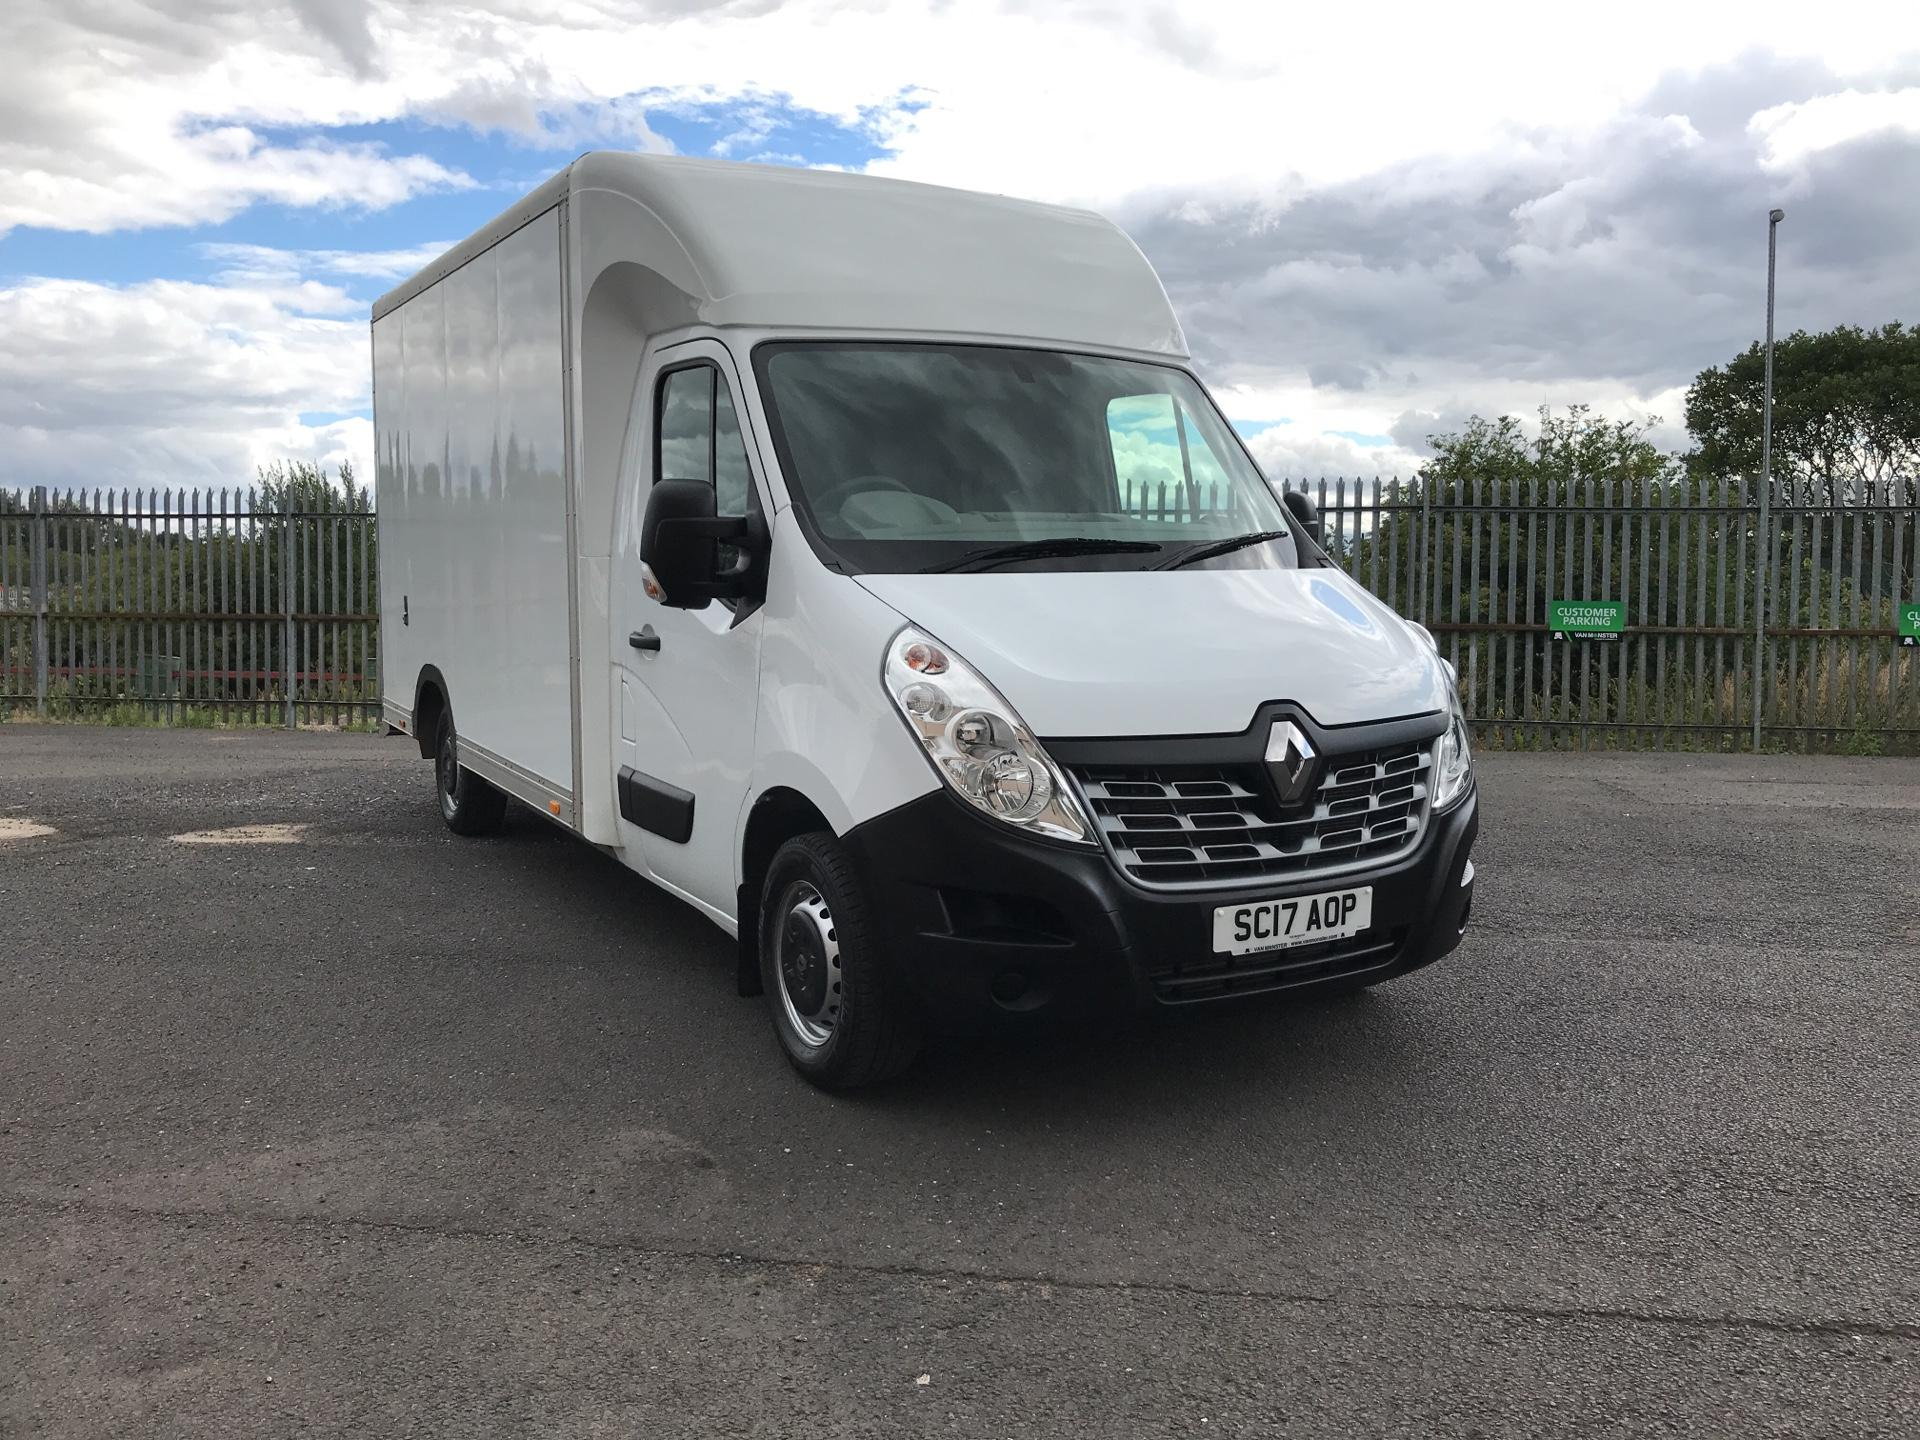 2017 Renault Master LL35 DCI 100PS LOW LOADER LUTON  (SC17AOP)